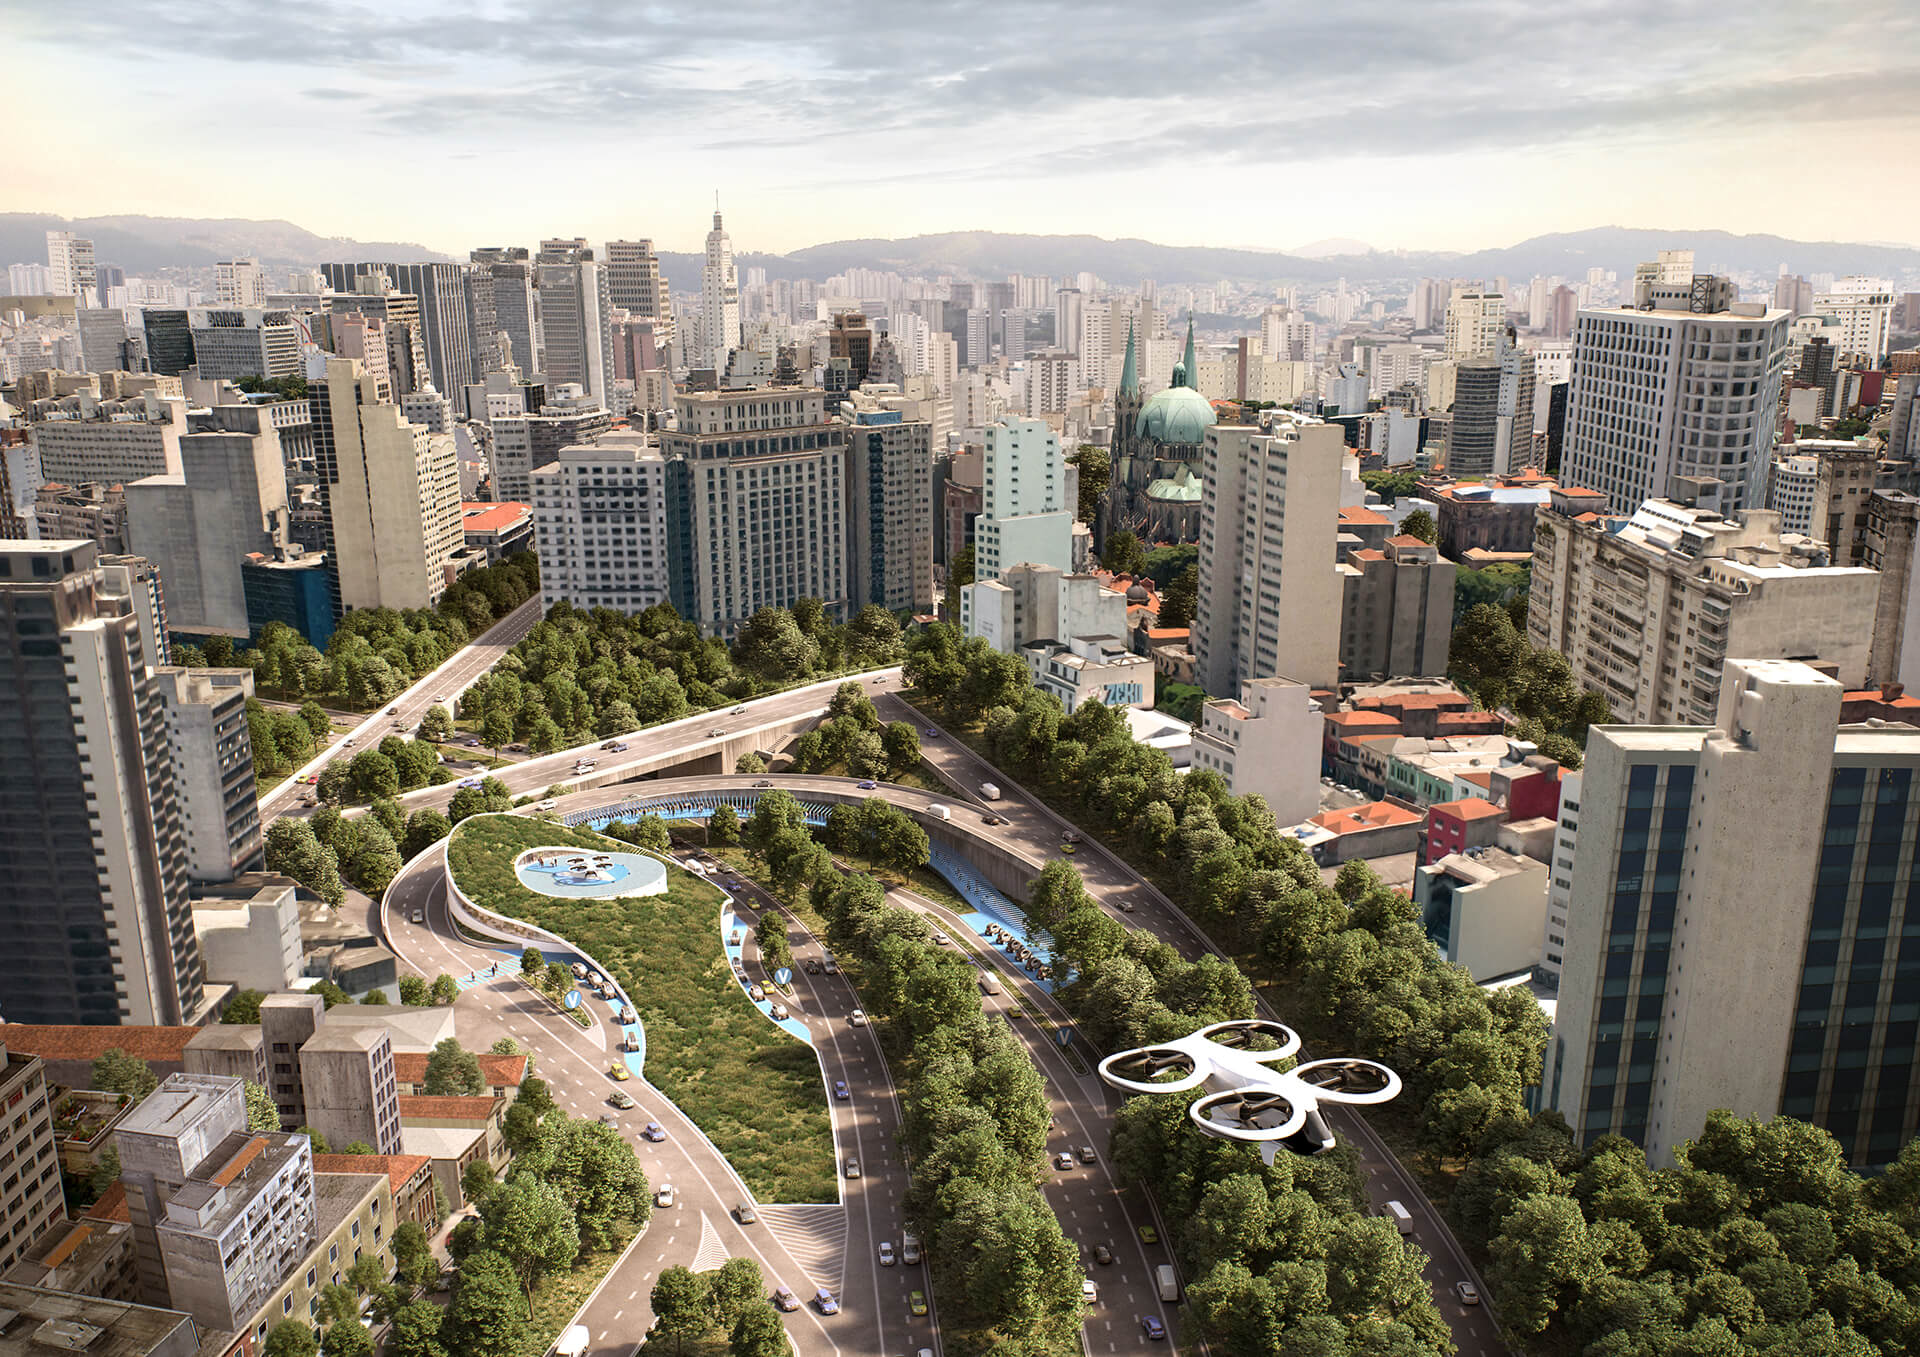 Adding value to residual spaces, Sao Paolo | Airbus | MVRDV | STIRworld